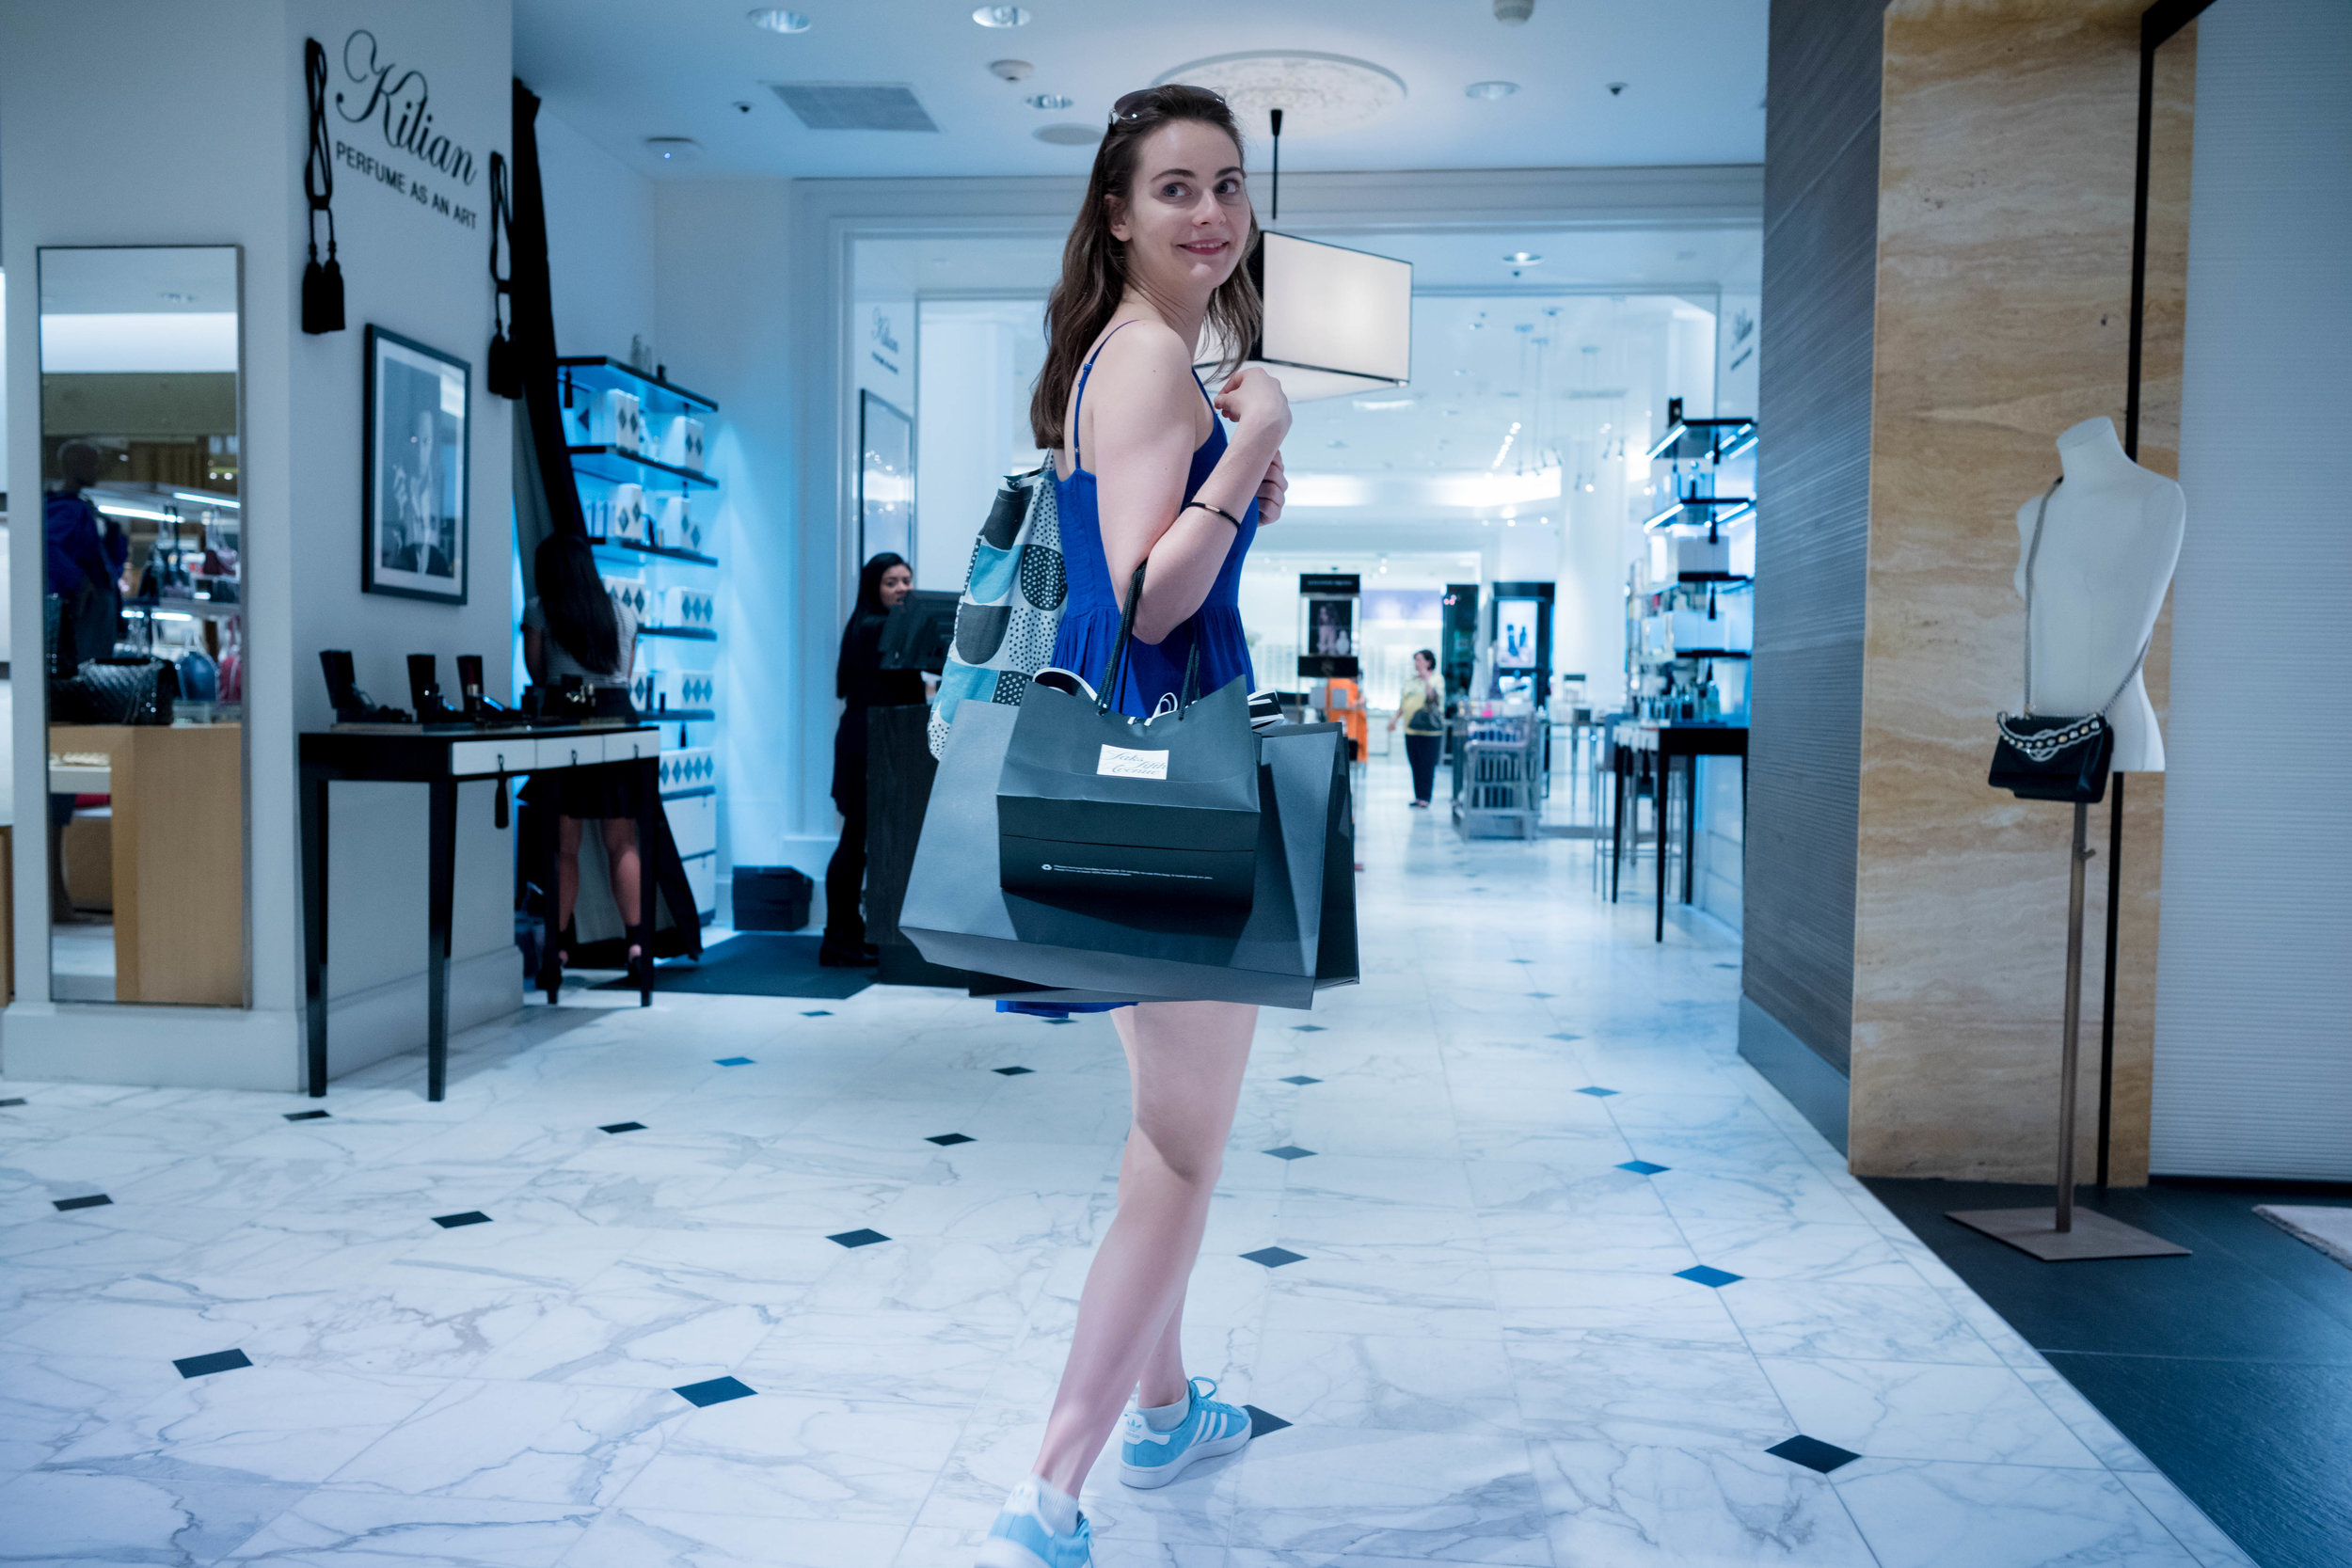 The next morning at Saks Fifth Avenue on Wilshire. Anna's wardrobe needed updating to a more typical Los Angeles look for the week. Leica 28mm f/1.4 Summilux ASPH